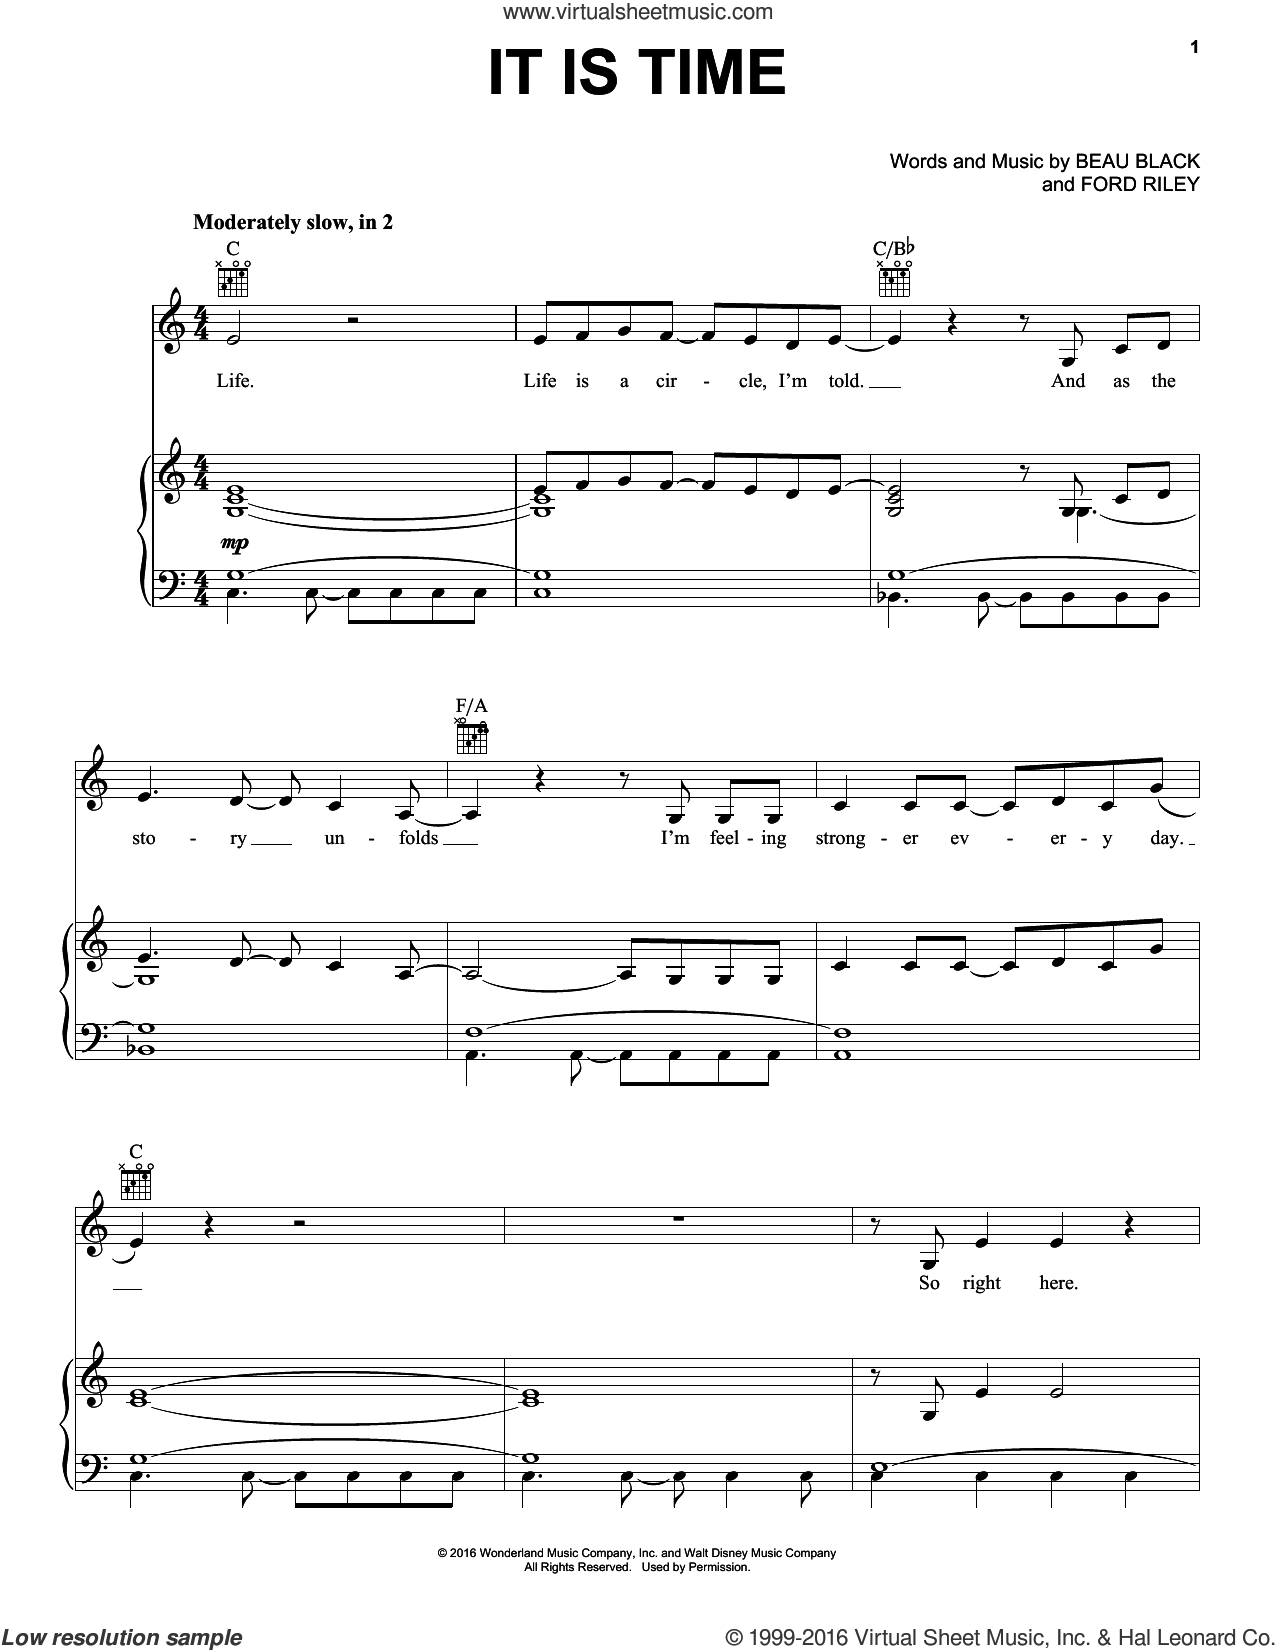 It Is Time sheet music for voice, piano or guitar by Ford Riley